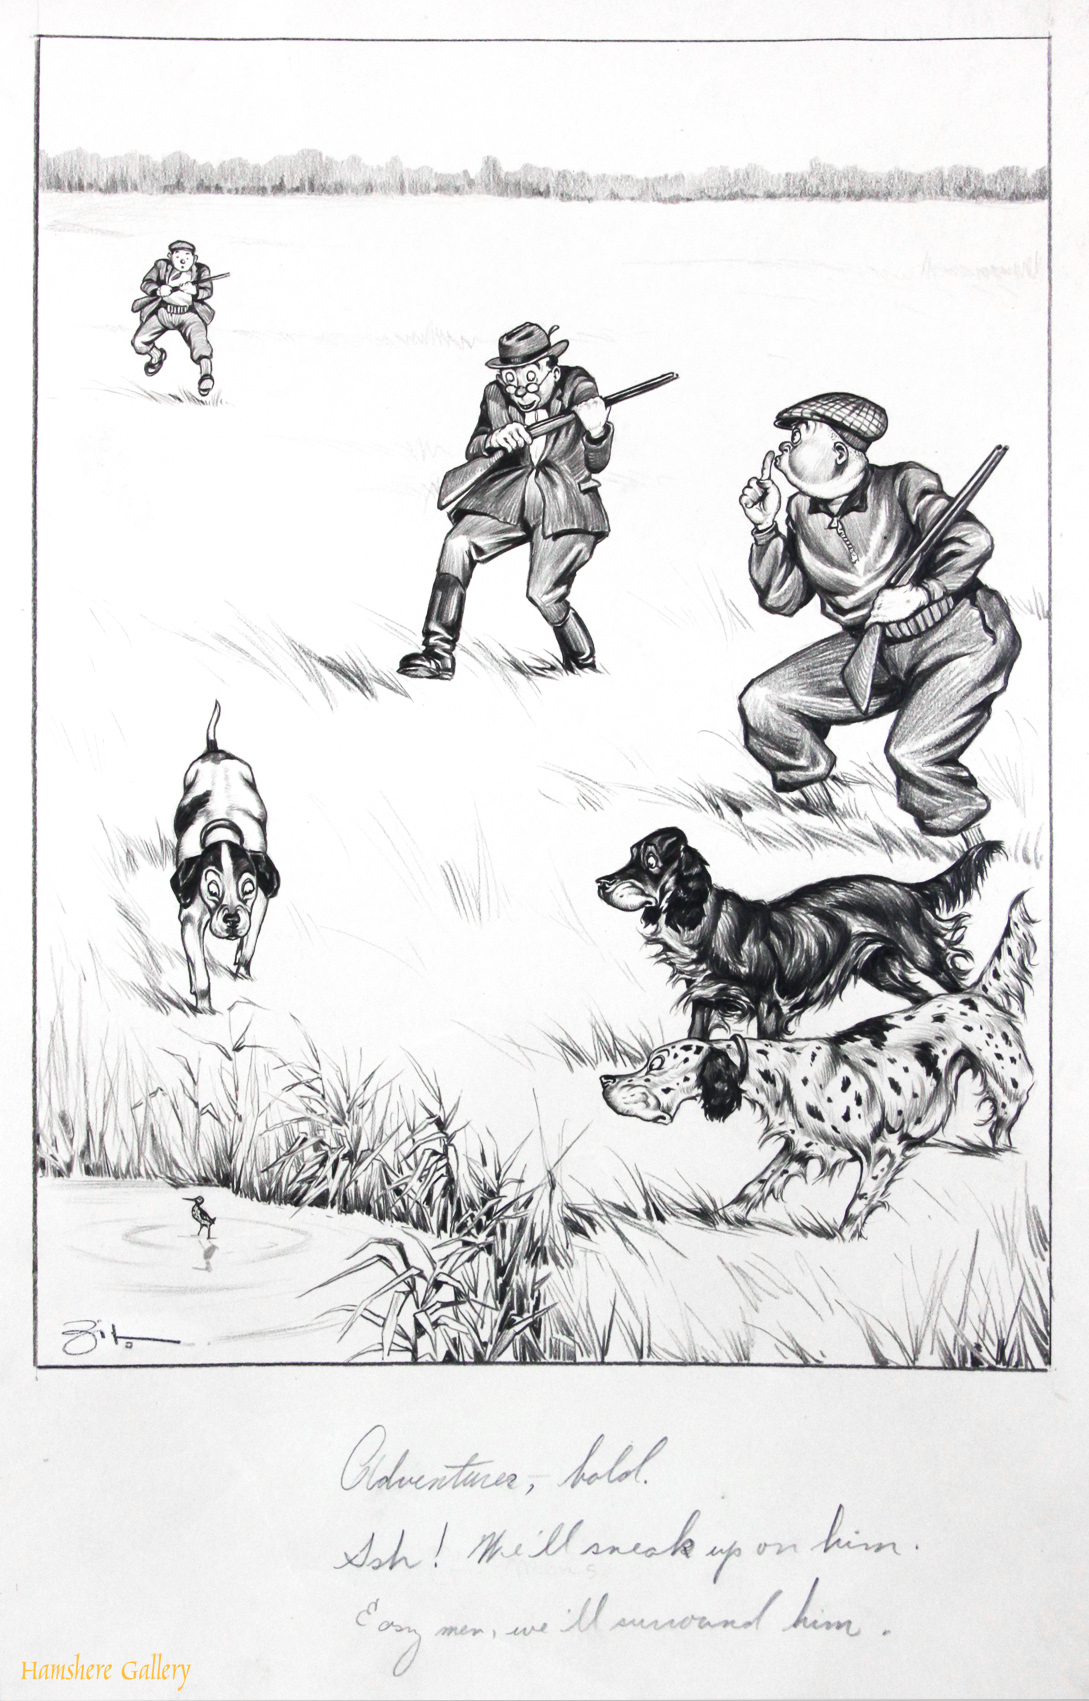 Click for larger image: A circa 1930�s pen and ink humorous canine dog / Gordon Setter / English Setter / Pointer hunting gundog / bird dog cartoon drawing by Vincenzo (Vincent) Maria Zito (European/American 1900-1966) - A circa 1930�s pen and ink humorous canine dog / Gordon Setter / English Setter / Pointer hunting gundog / bird dog cartoon drawing by Vincenzo (Vincent) Maria Zito (European/American 1900-1966)